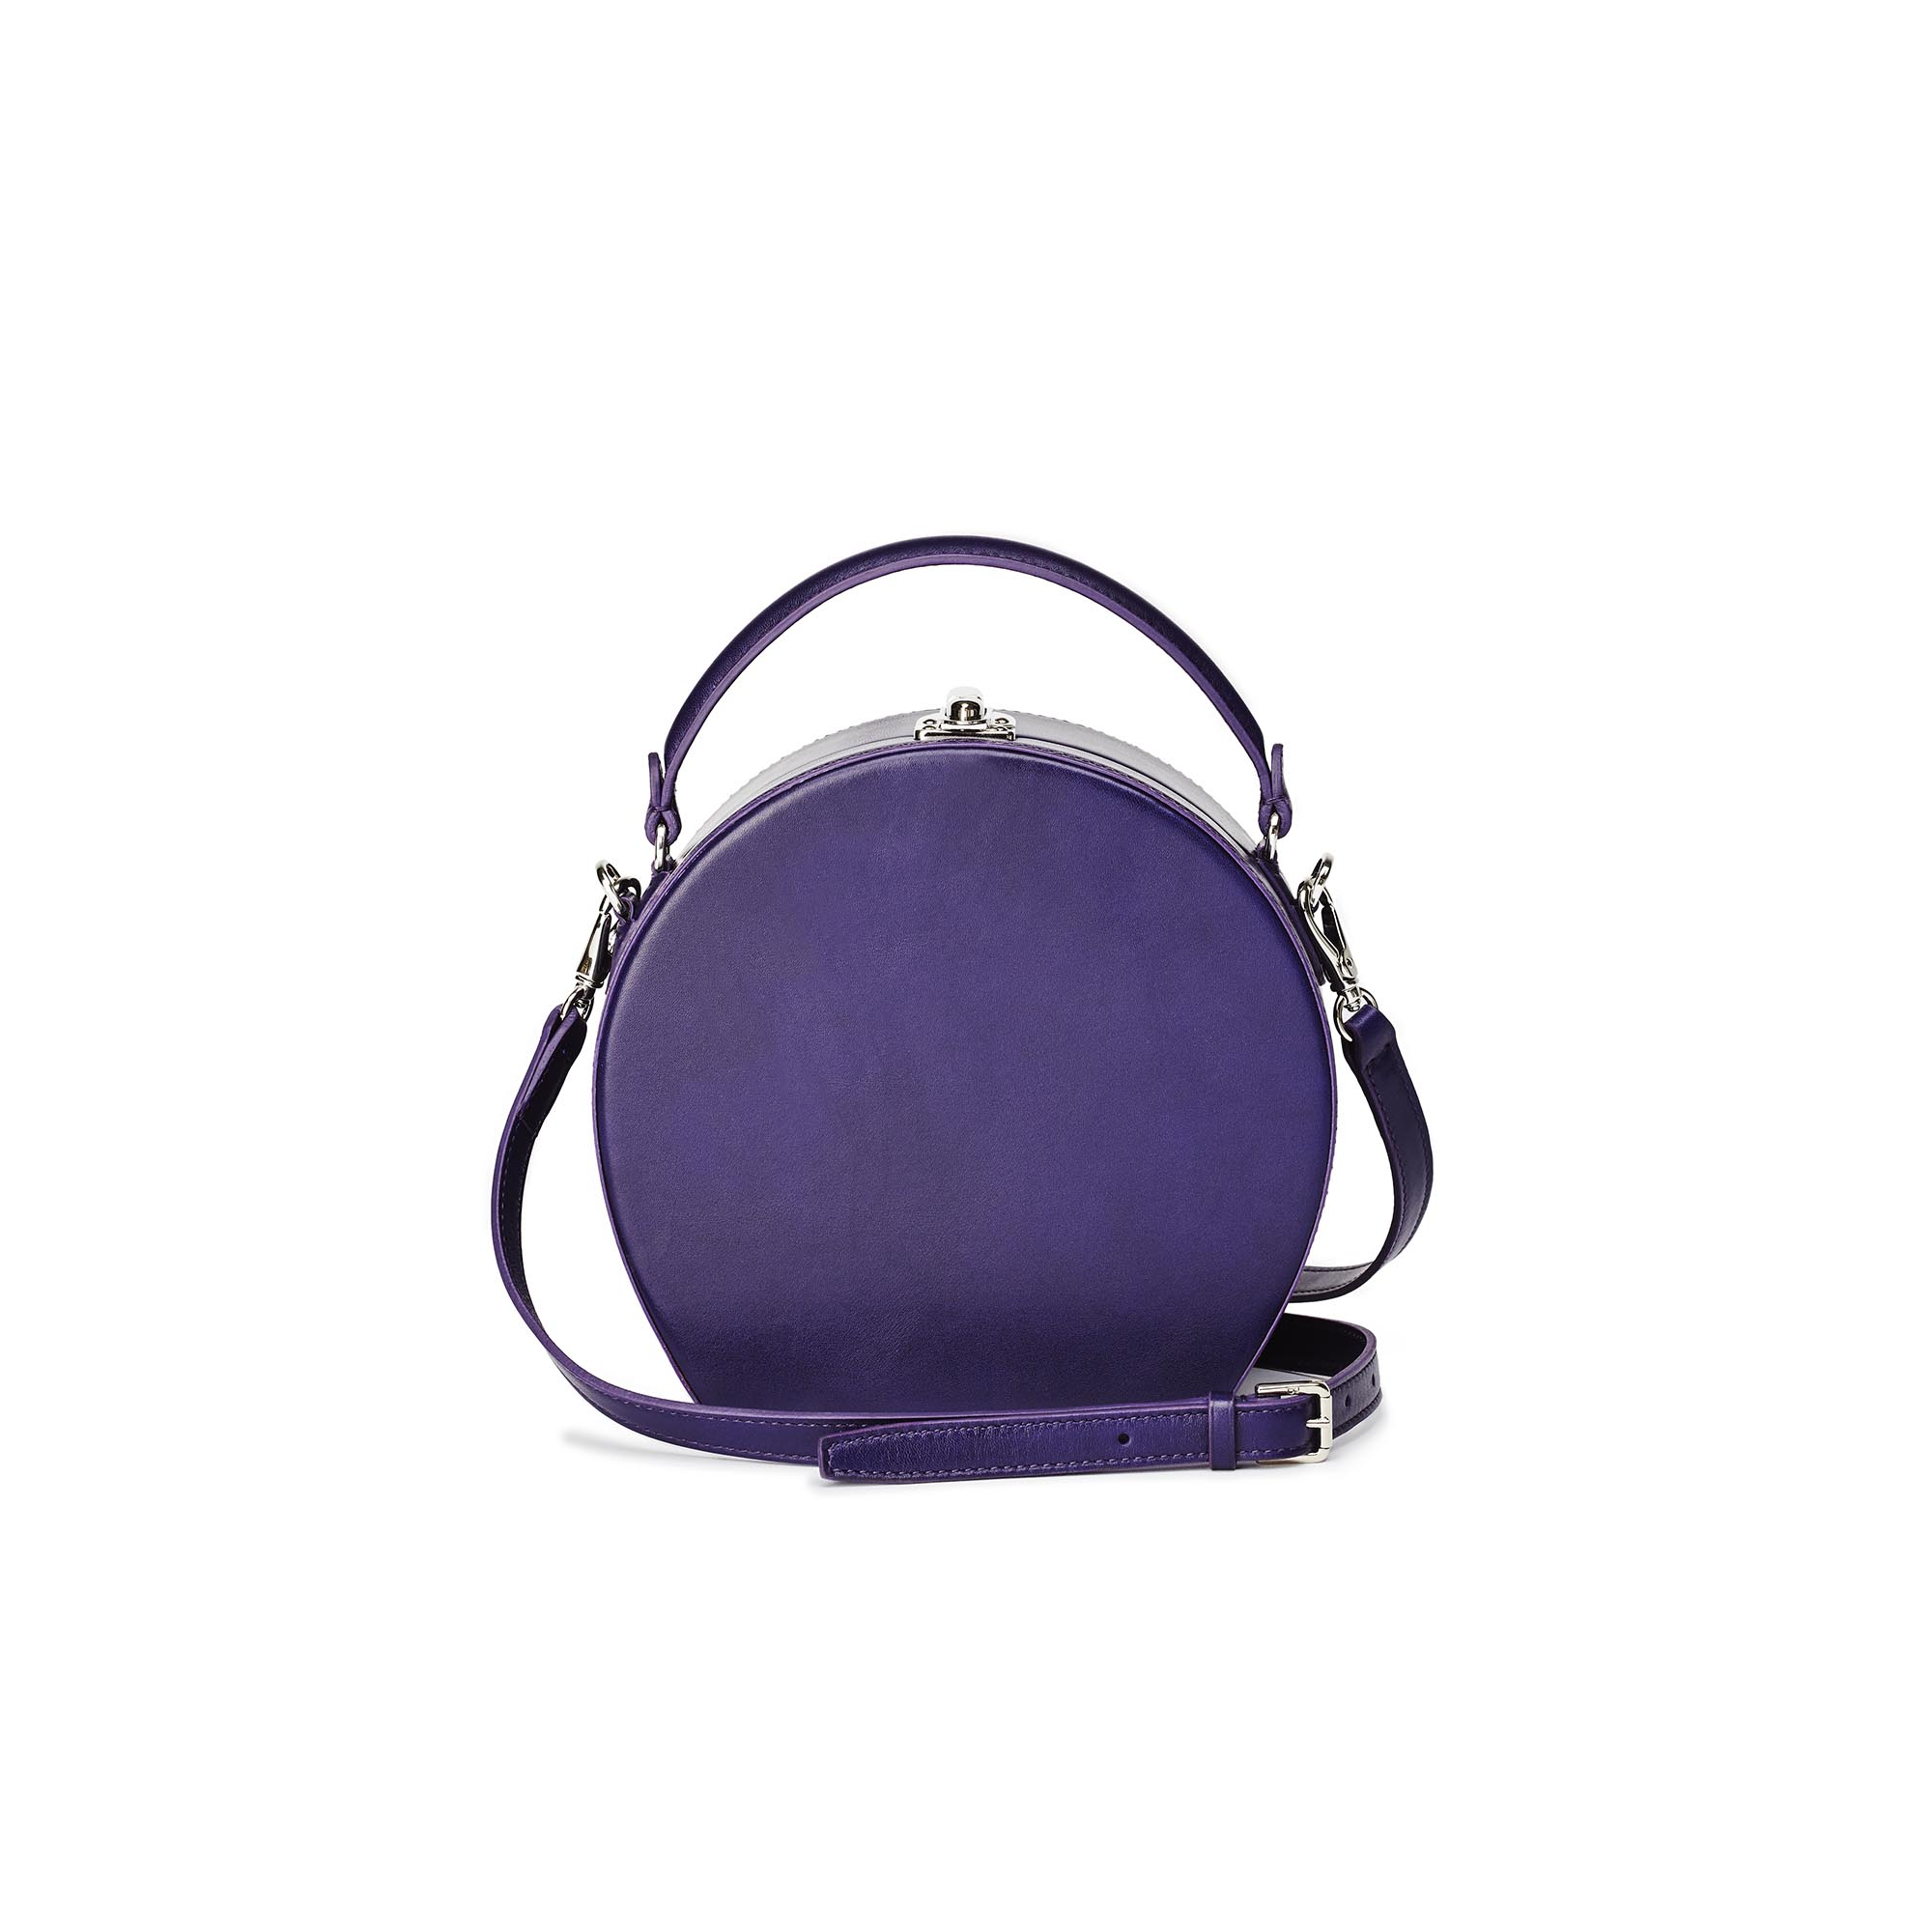 Regular-Bertoncina-purple-french-calf-bag-Beroni-1949_01